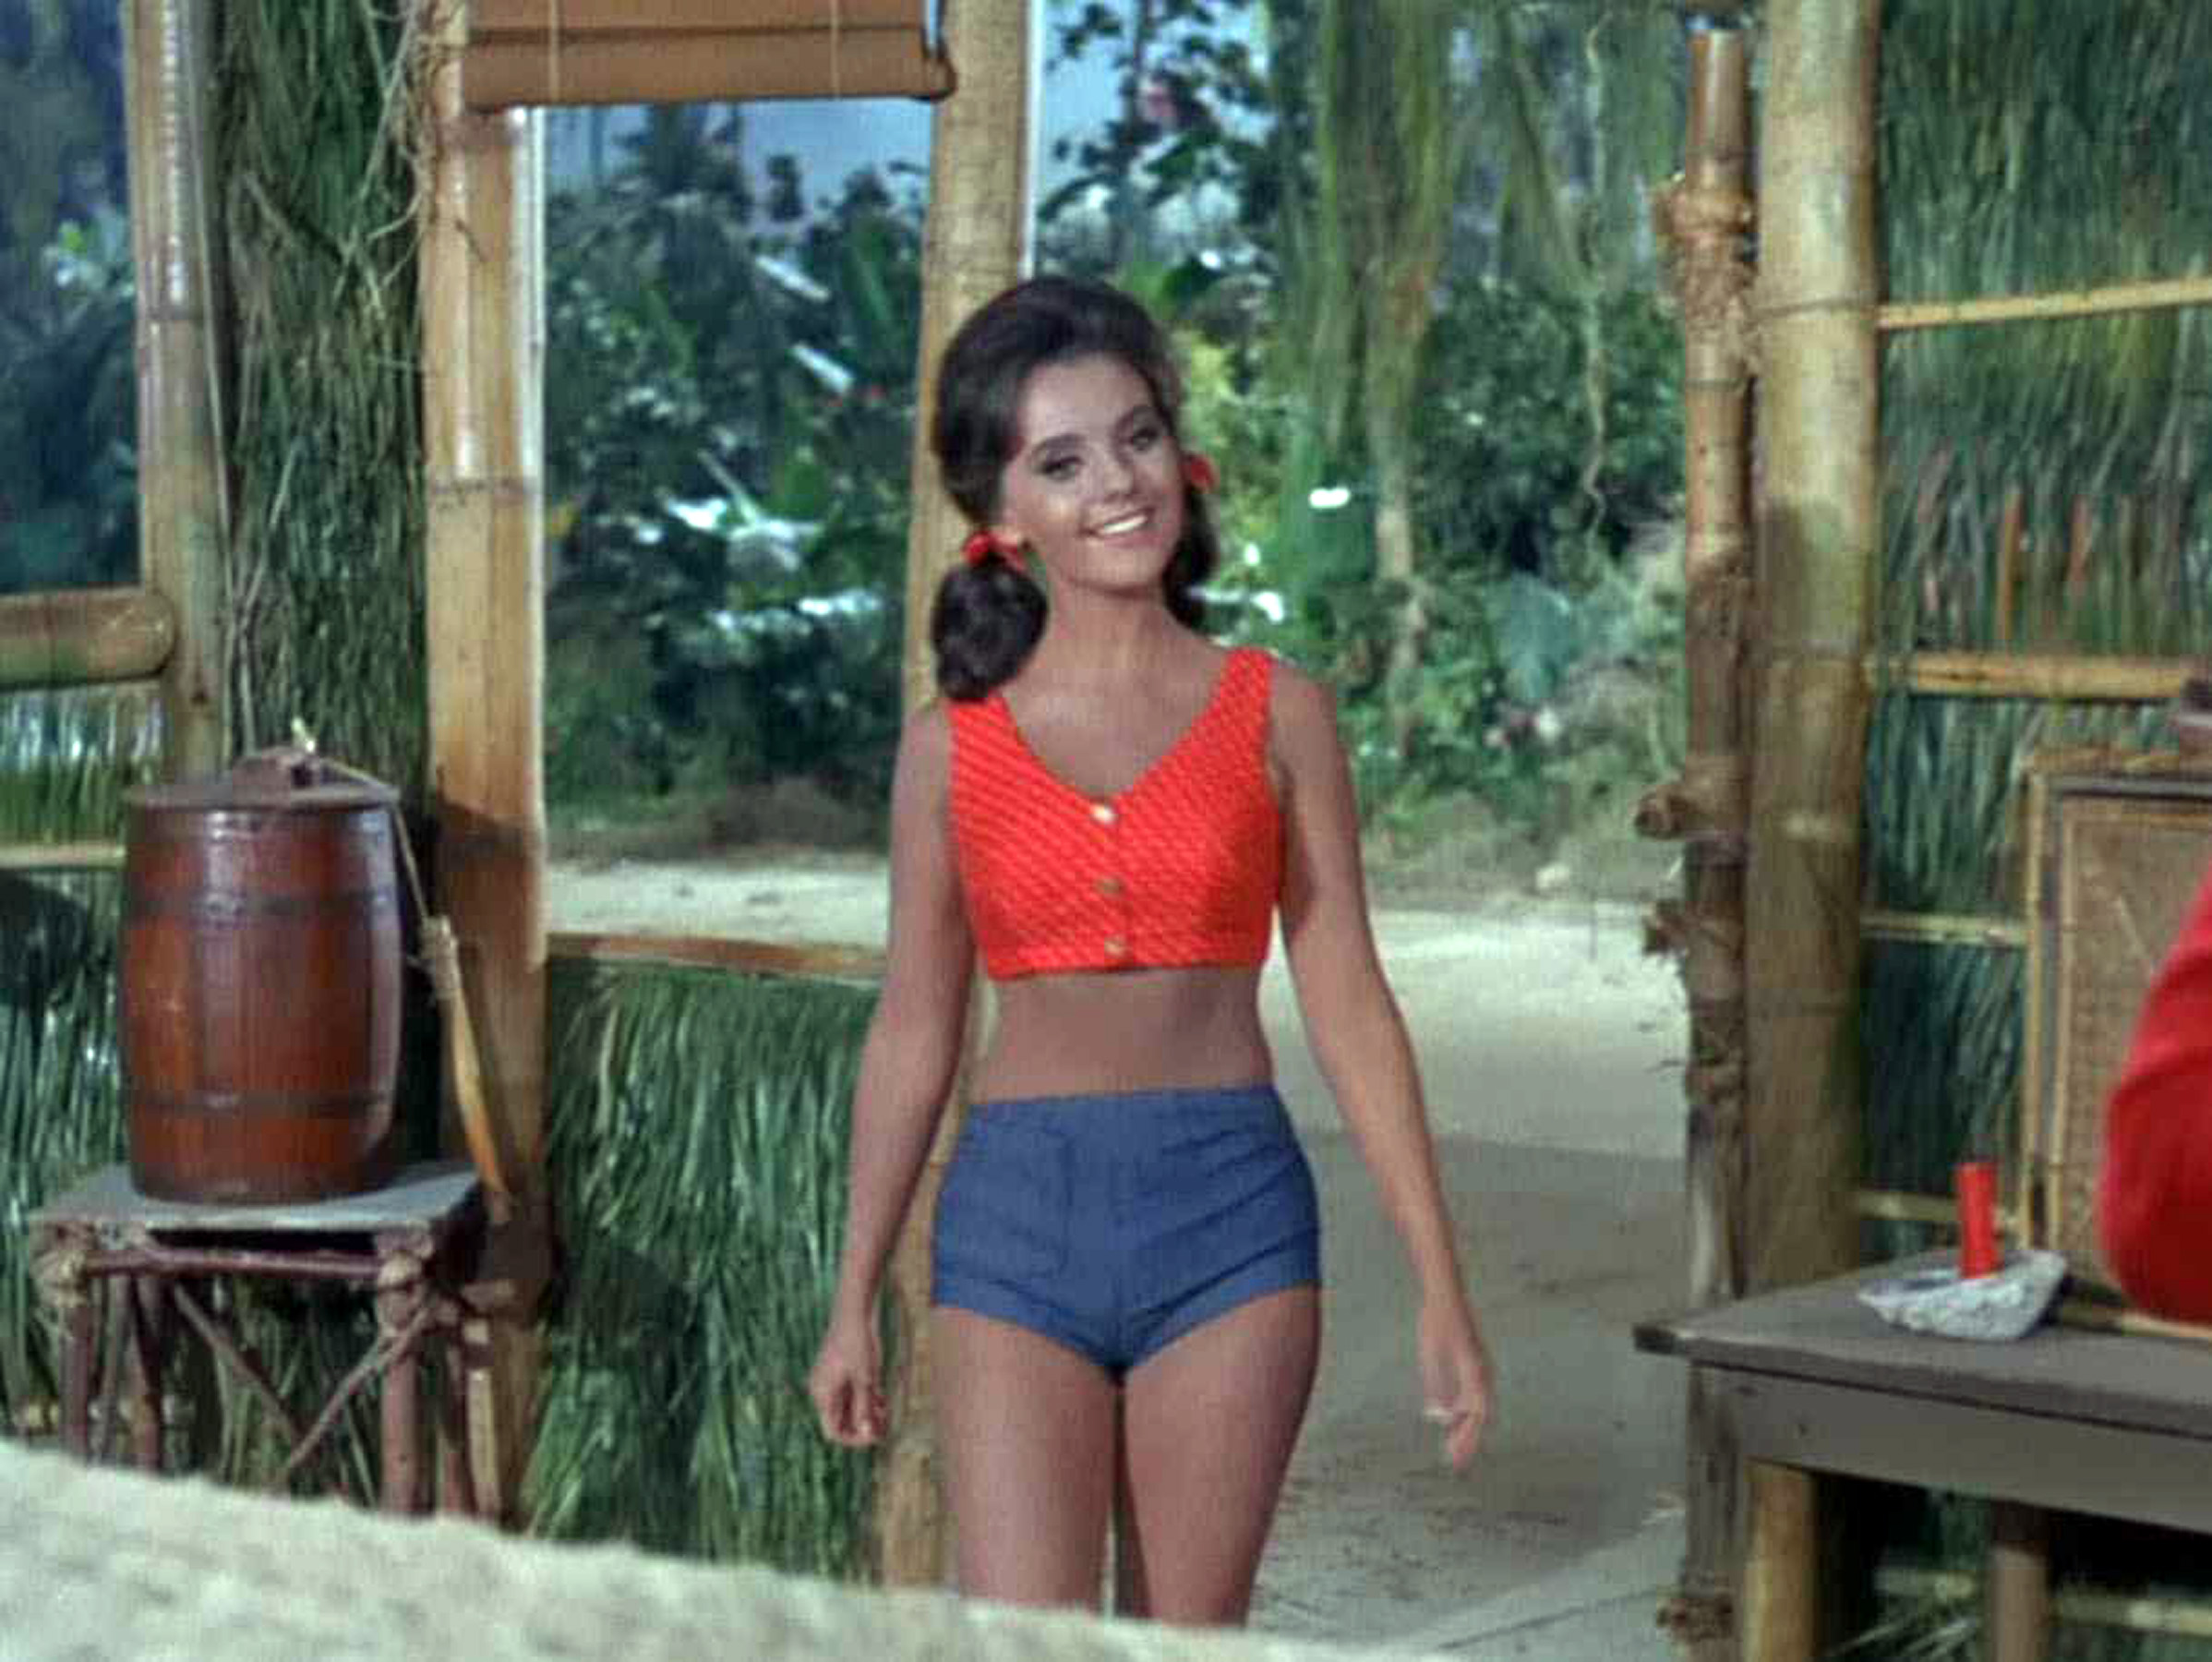 a4d4074a7a Dawn Wells as Mary Ann in that classic two-piece outfit (video still)